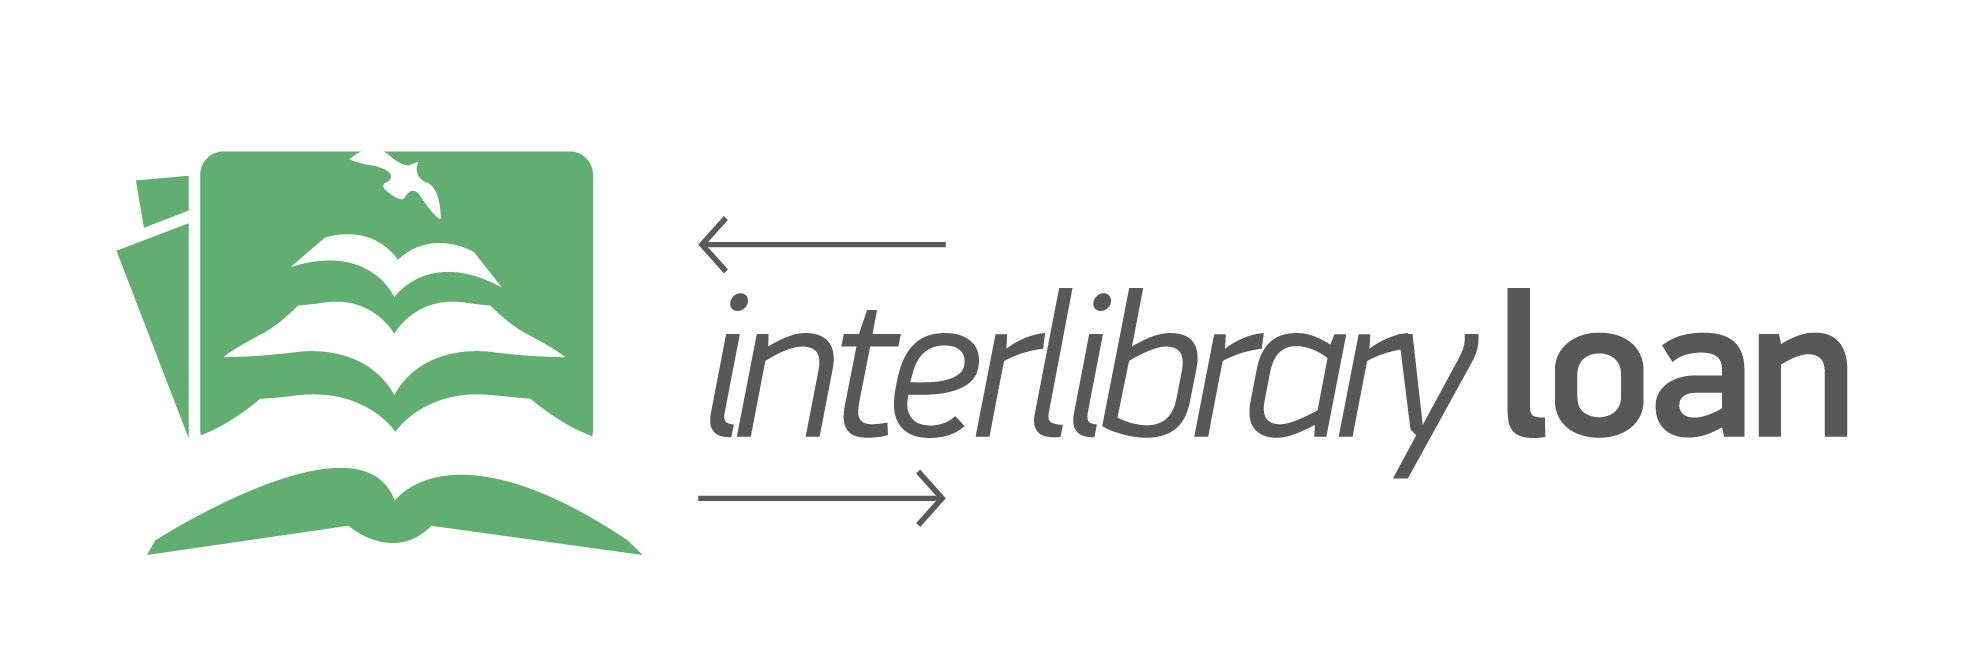 Interlibrary loan logo. © AUTh Library